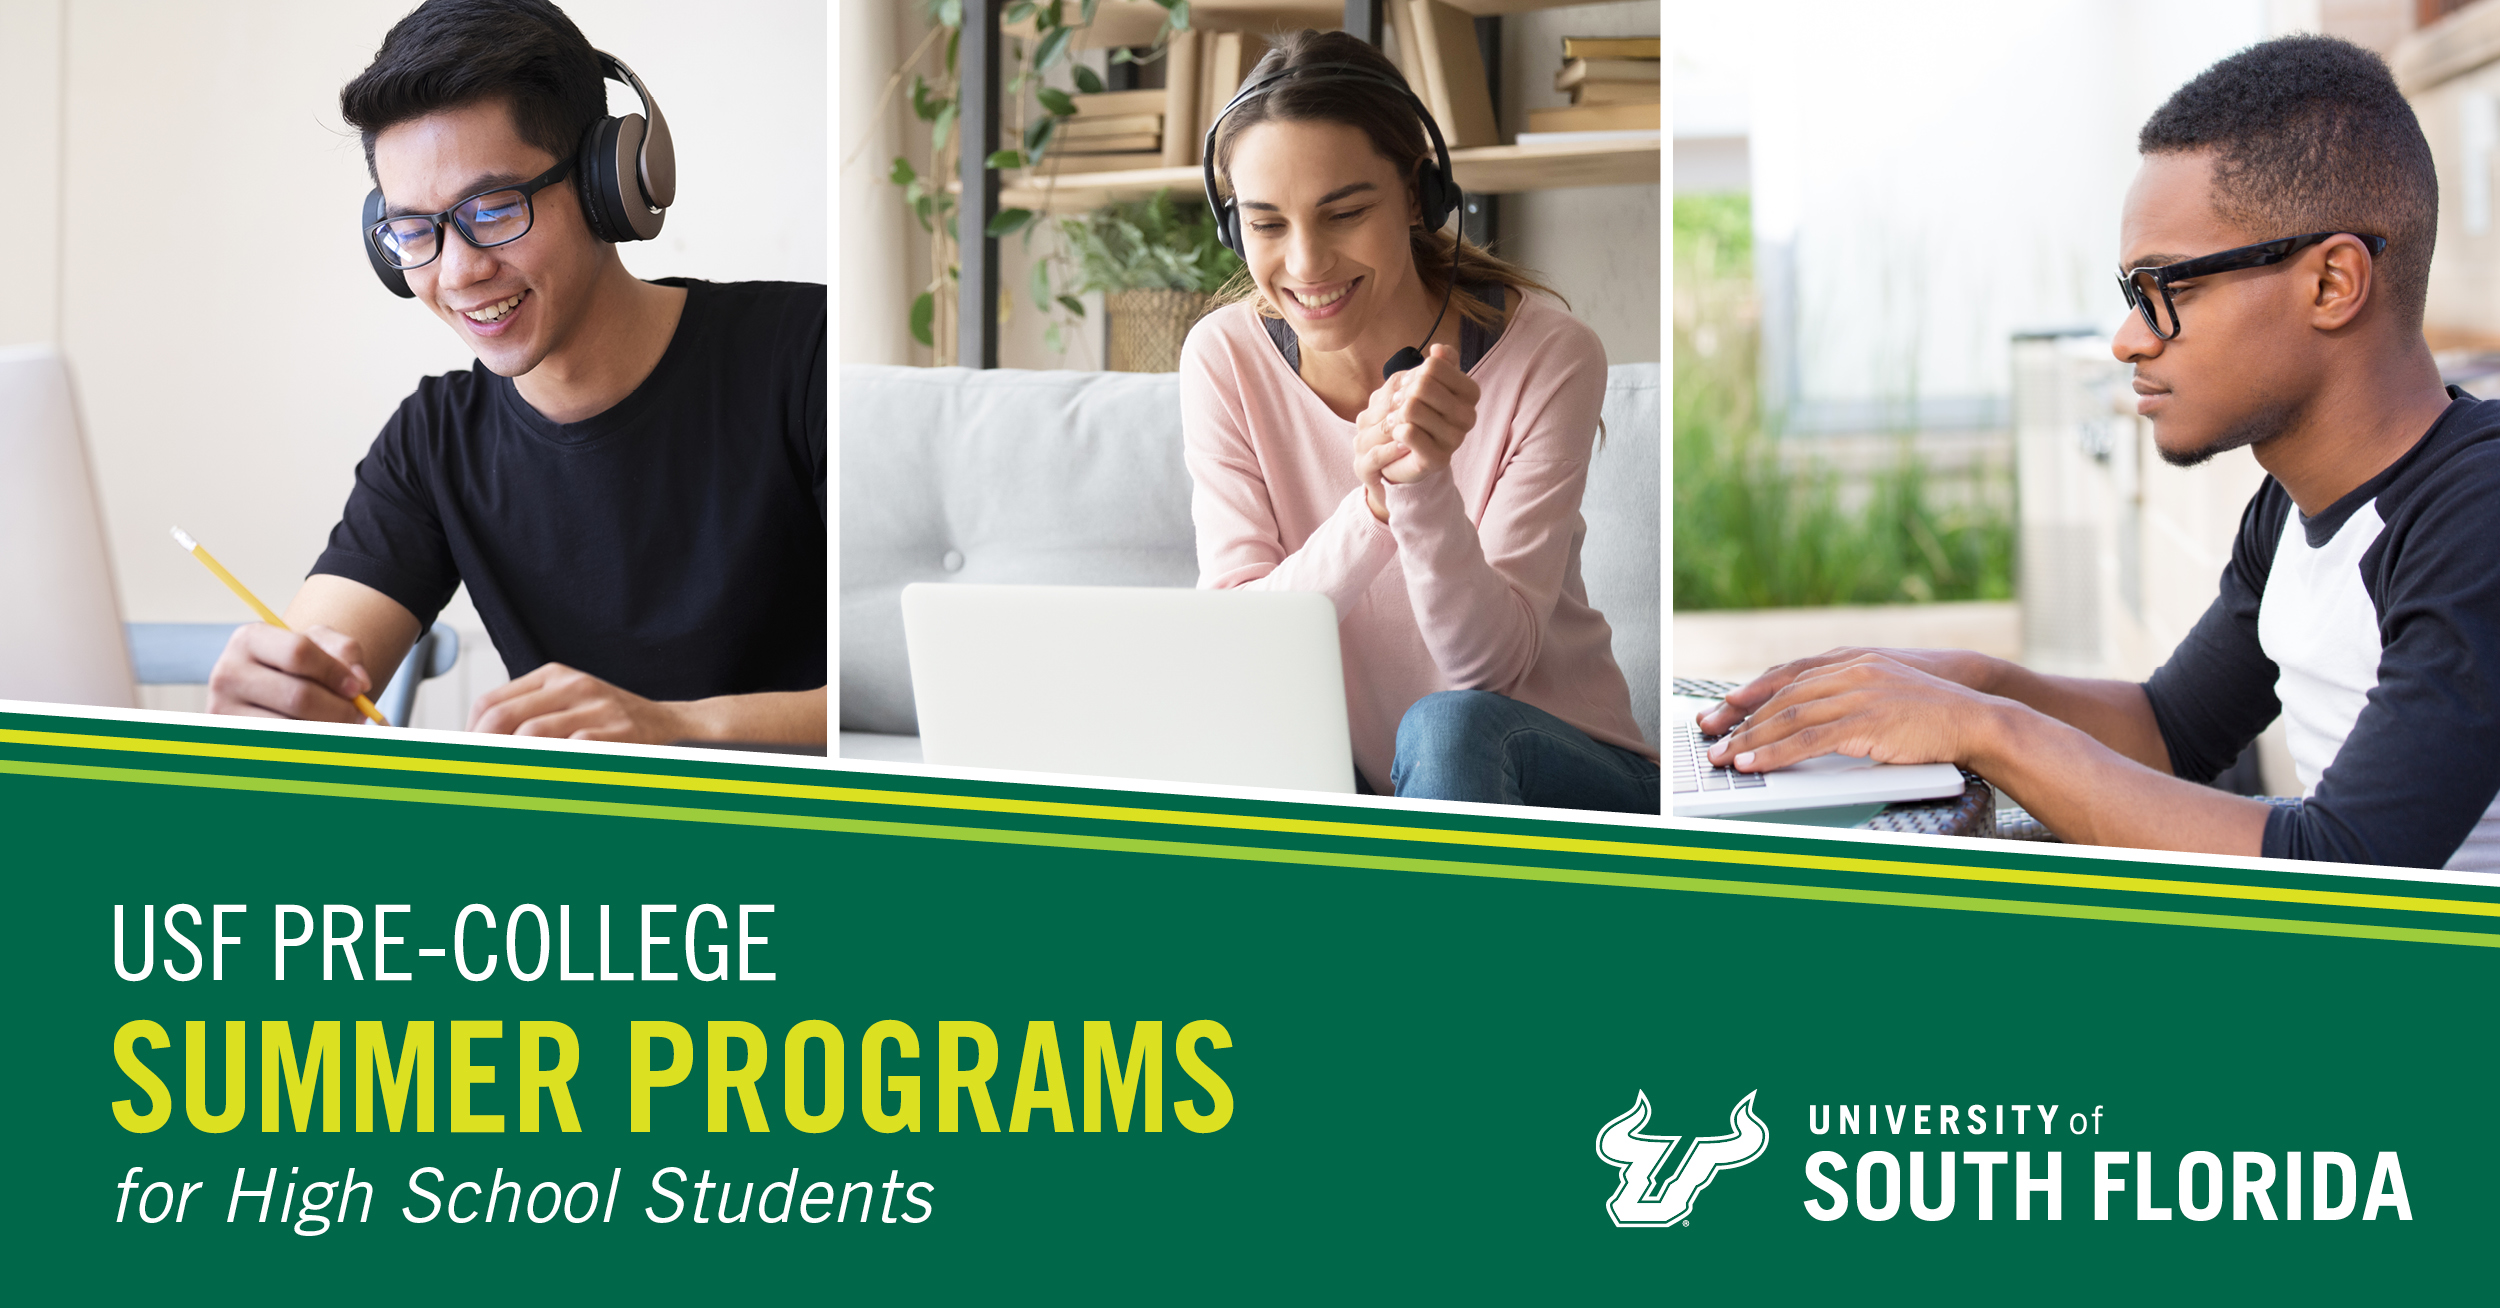 Summer Program - Pre-Med | University of South Florida Pre-College: Summer Programs for High School Students